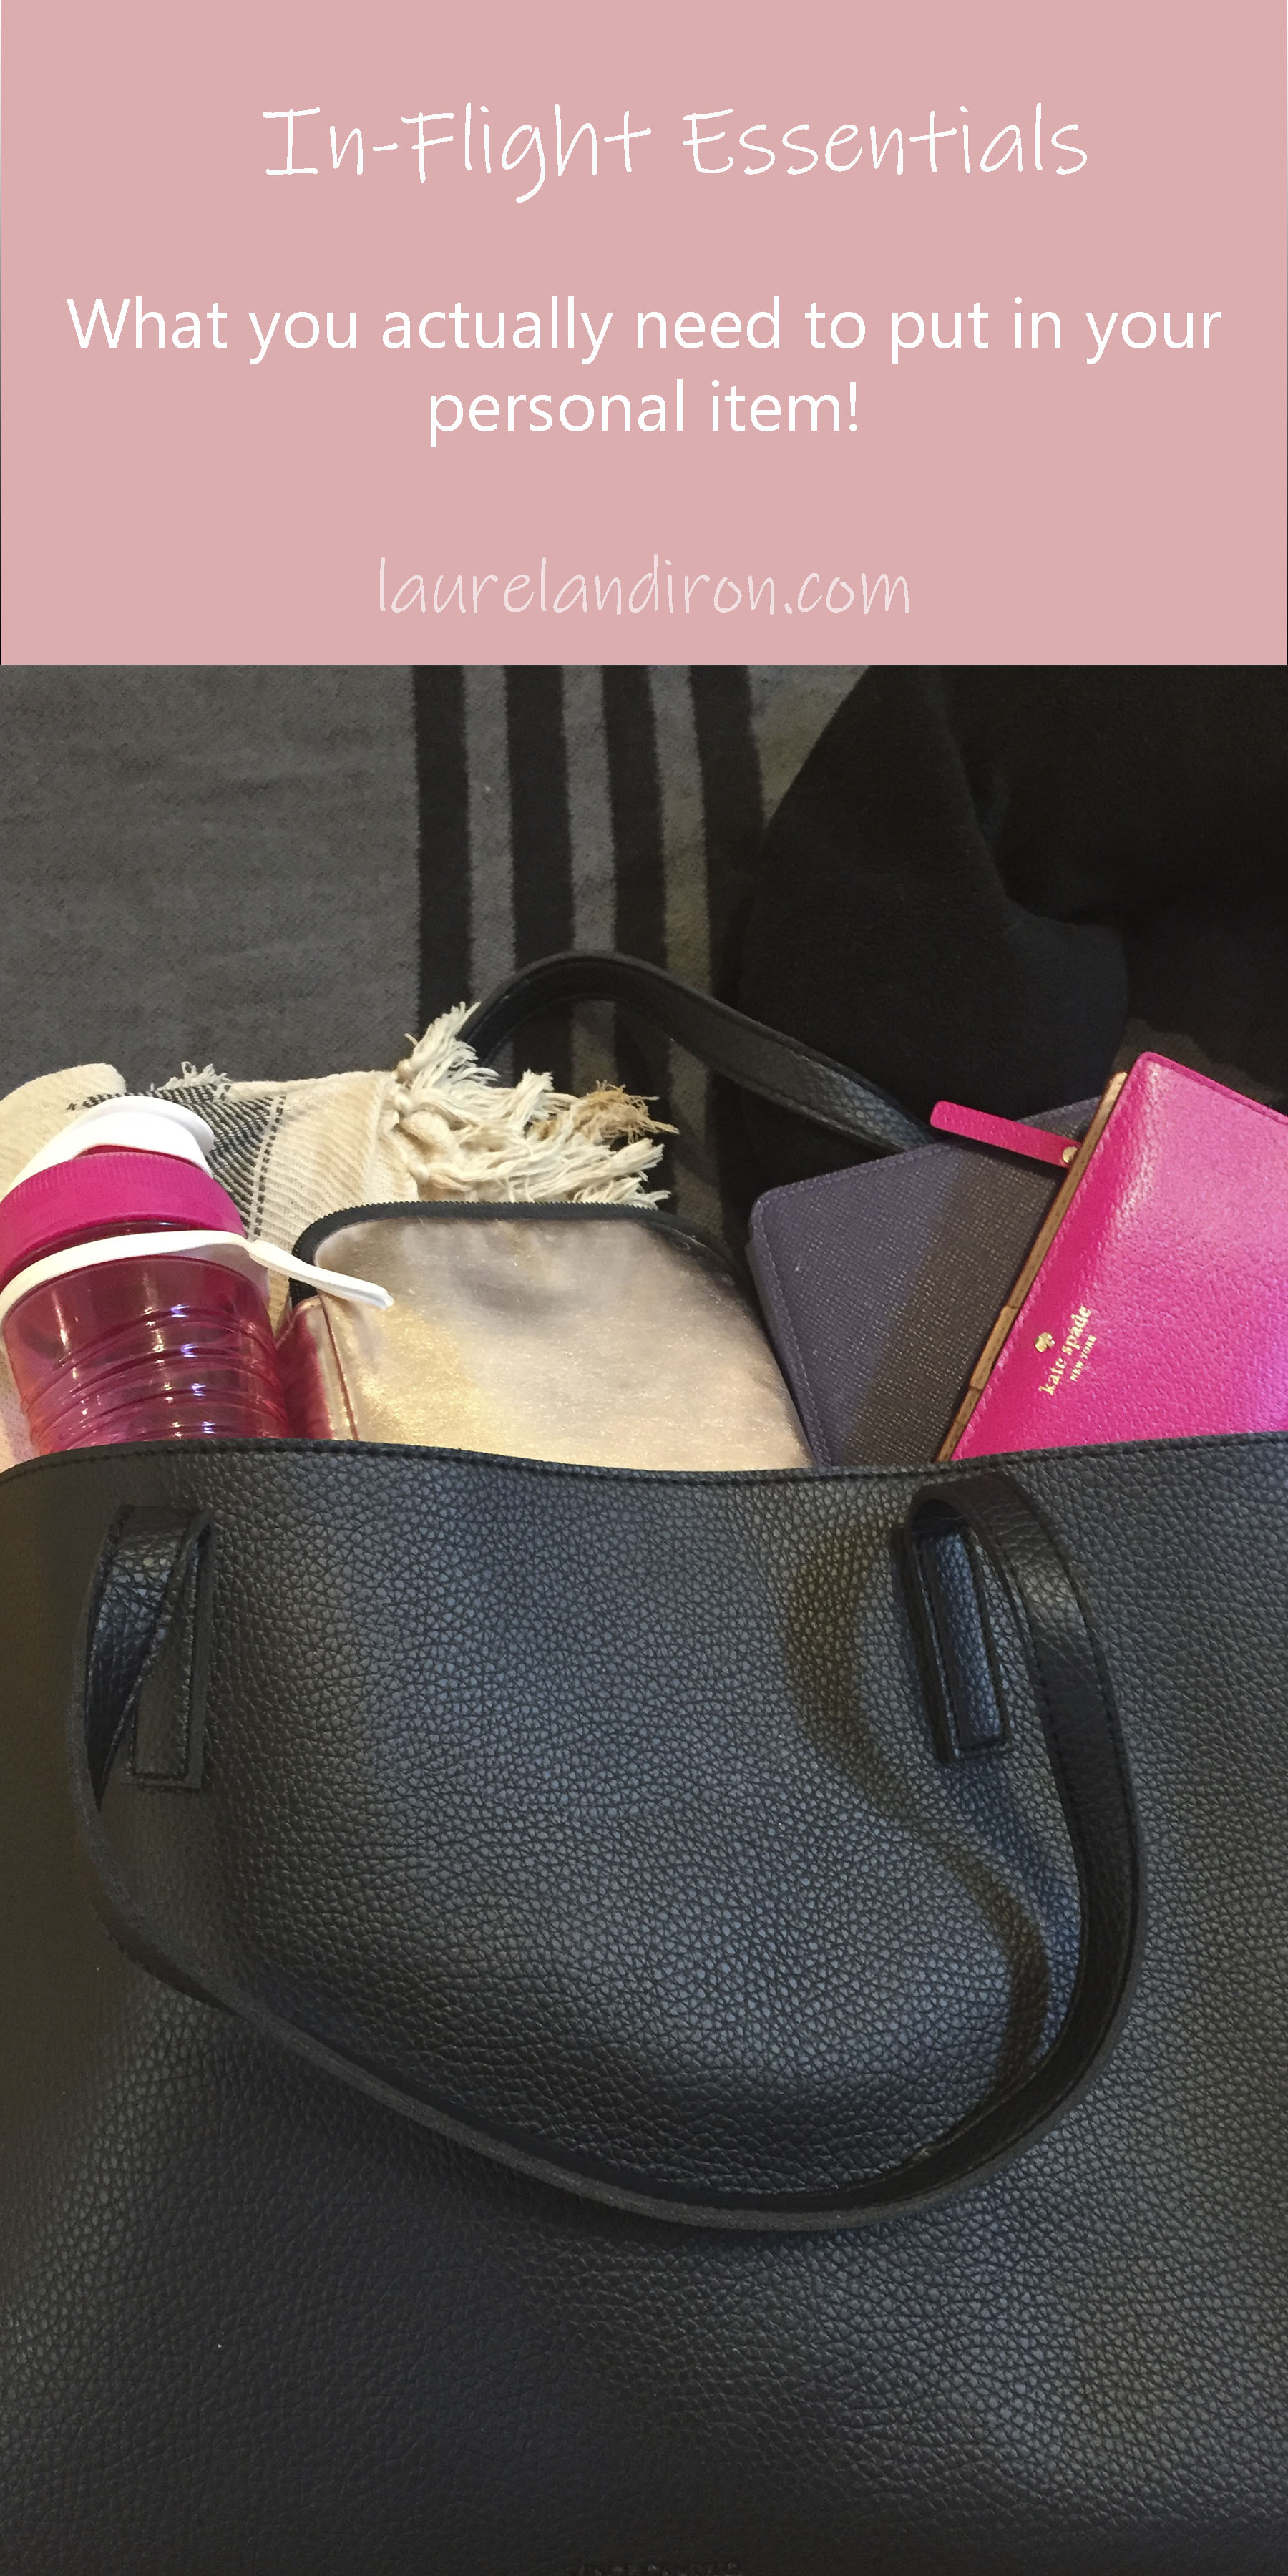 What you actually need to pack in your personal item for a short flight! | Laurel and Iron